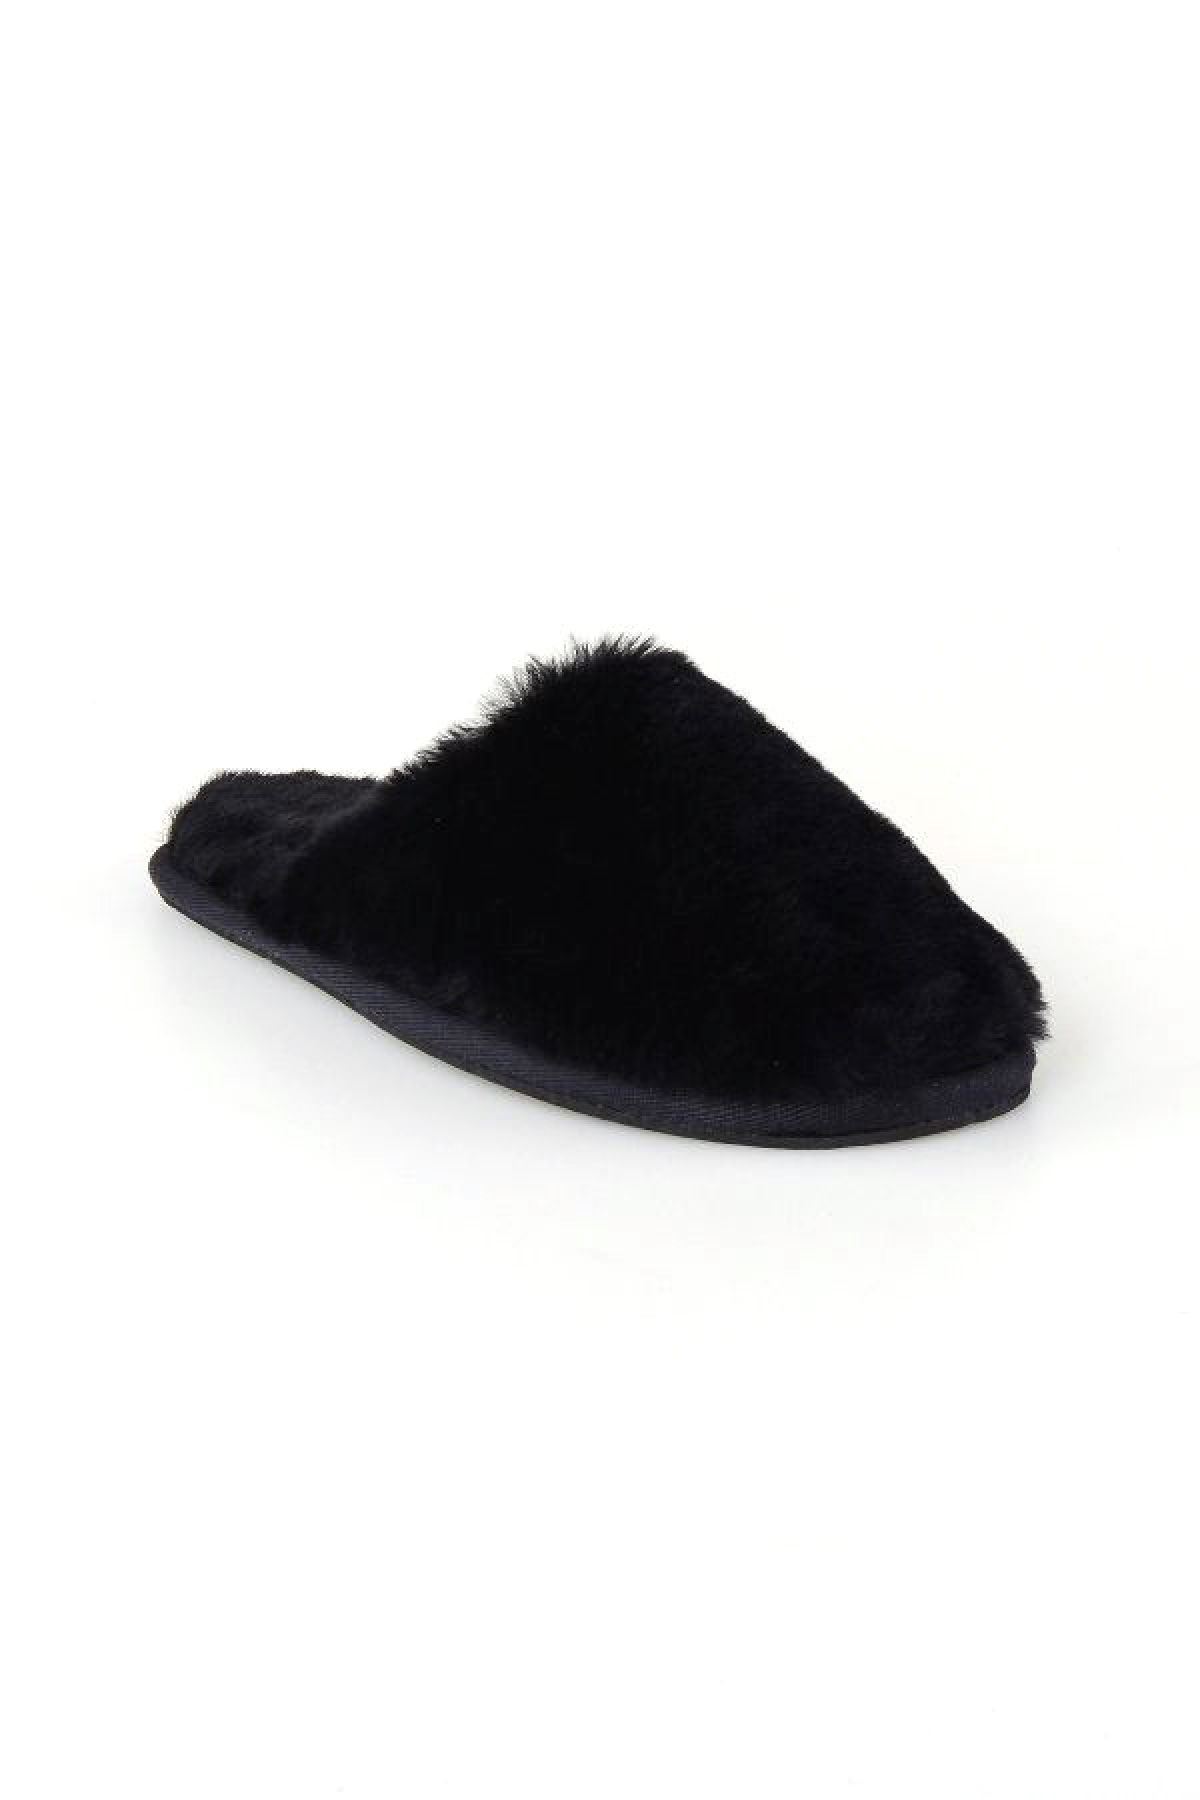 Pegia Women Shearling Slippers 191092 Black